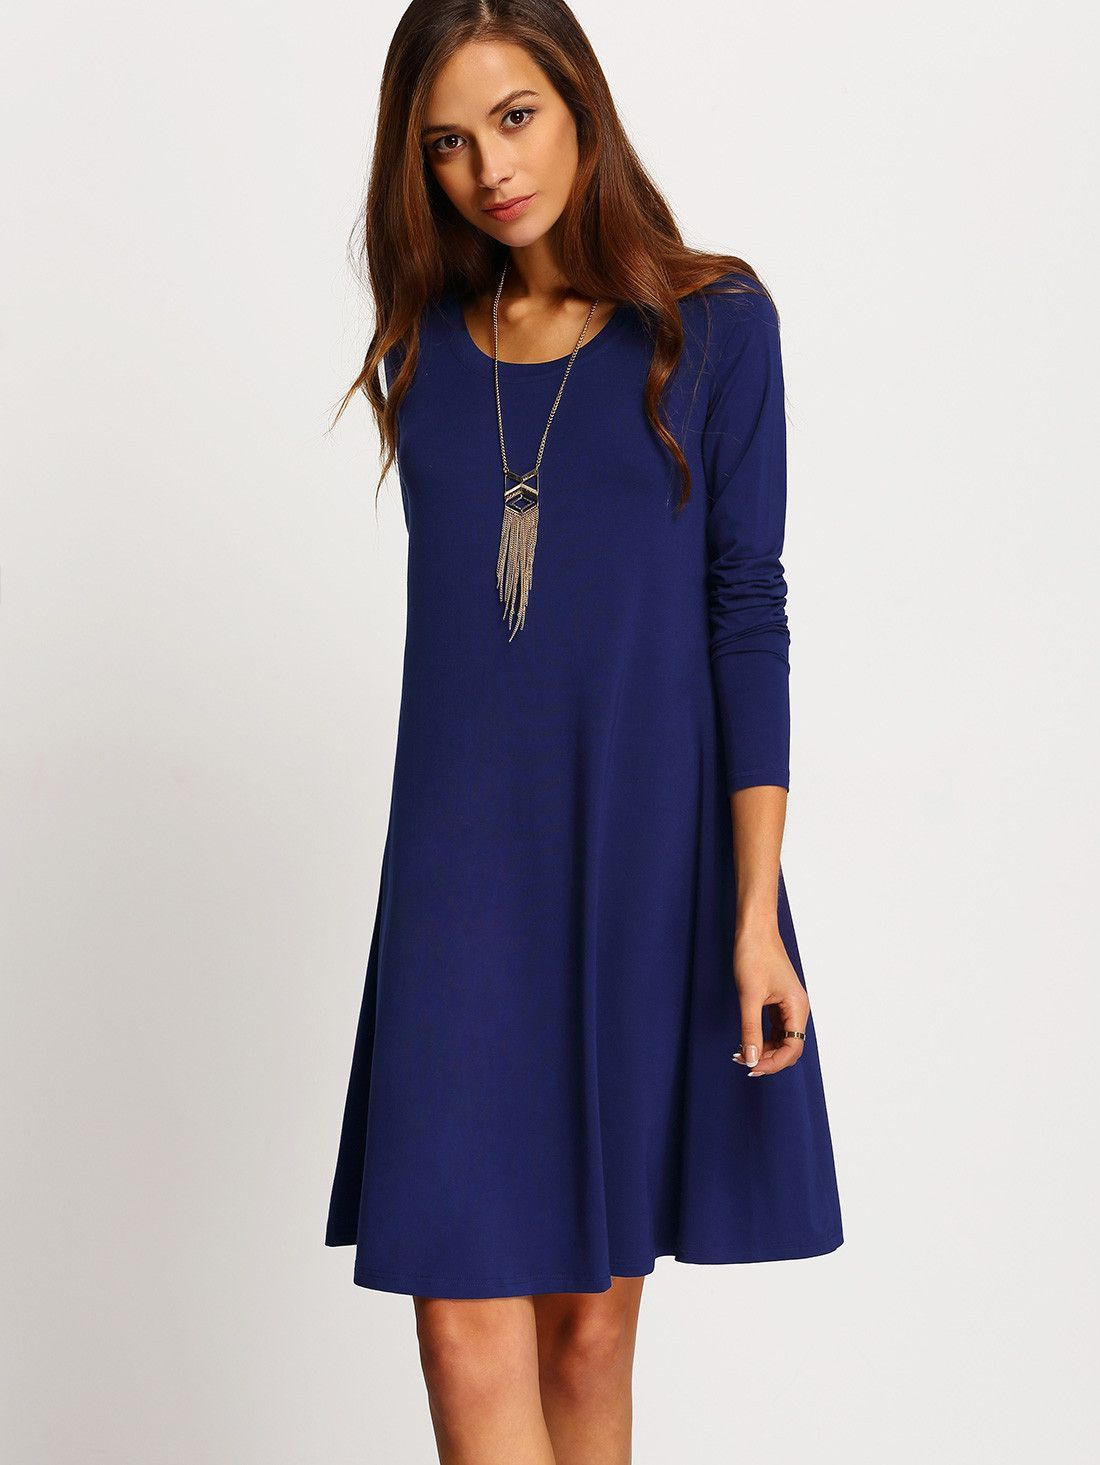 e4854d17866 ... Type  Plain Sleeve Length  Long Sleeve Color  Blue Dresses Length   Short Style  Basic Material  Cotton Neckline  Round Neck Silhouette  Shift  Shoul